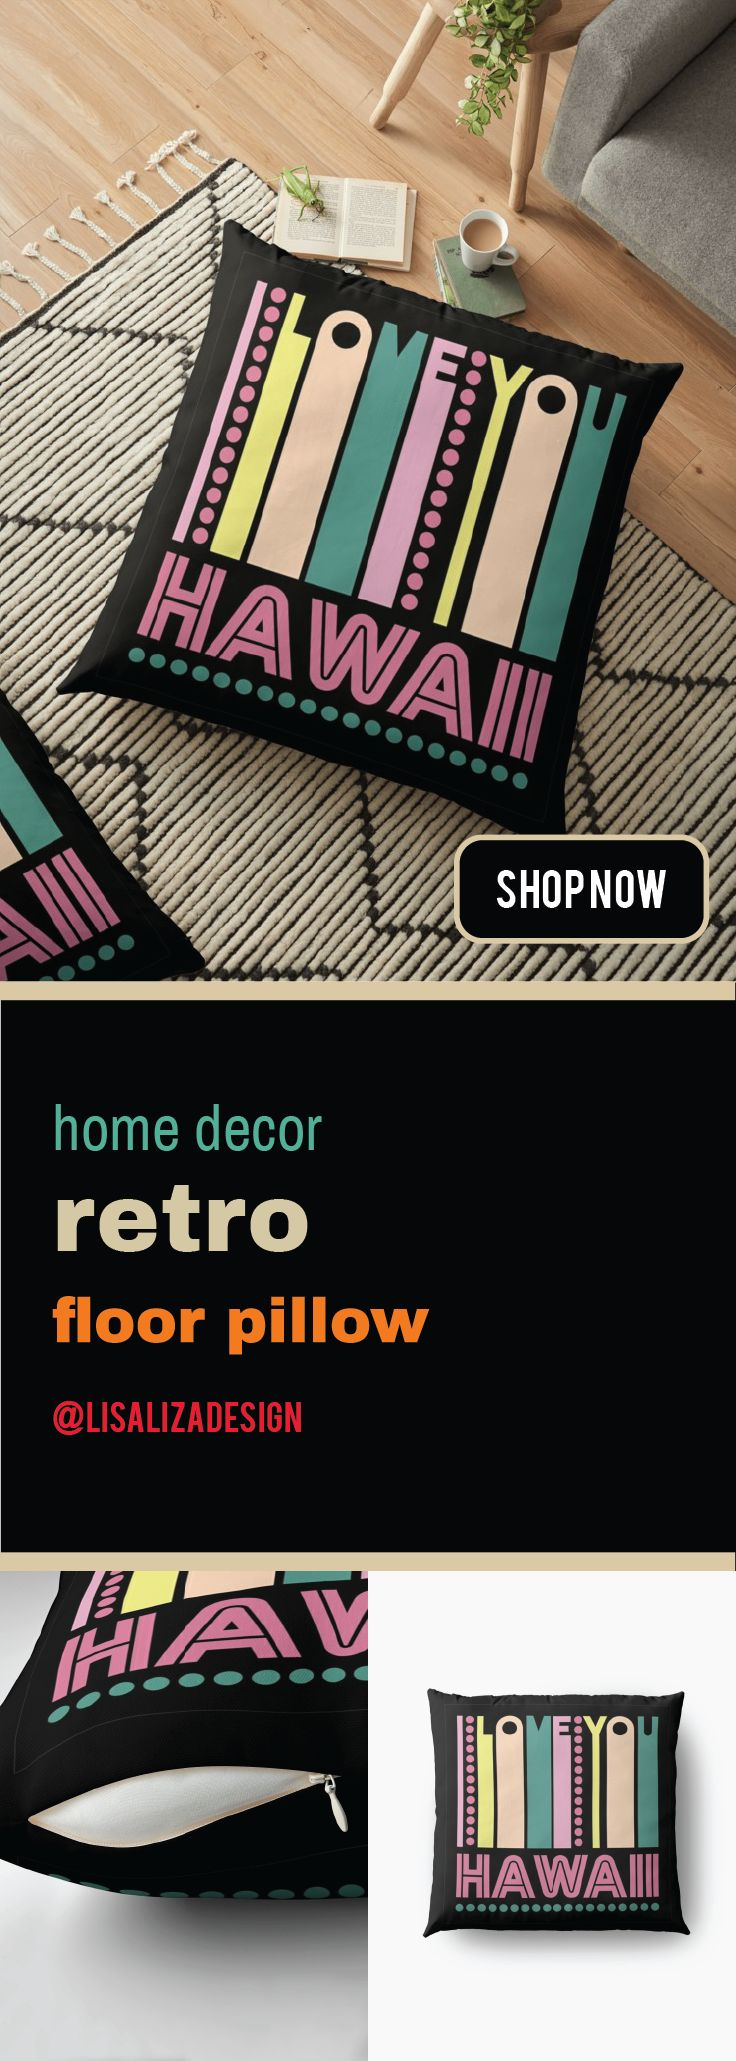 Hawaii I LOVE MY STATE Floor Pillows   This is a the perfect gift ideas for vintage or retro lover.   Receiver of this gift will be most delighted and appreciate your taste of choice.   #FloorPillow #Homedecor #Hugs #Gifts #Largepillow   #FloorCushions #holidaygifts #presents #gifts #Retro   #Vintage #Oldies #RetroHomeDecor #VintageHomeDecor #Hawaii  #Redbubble #Lisaliza #giftideas